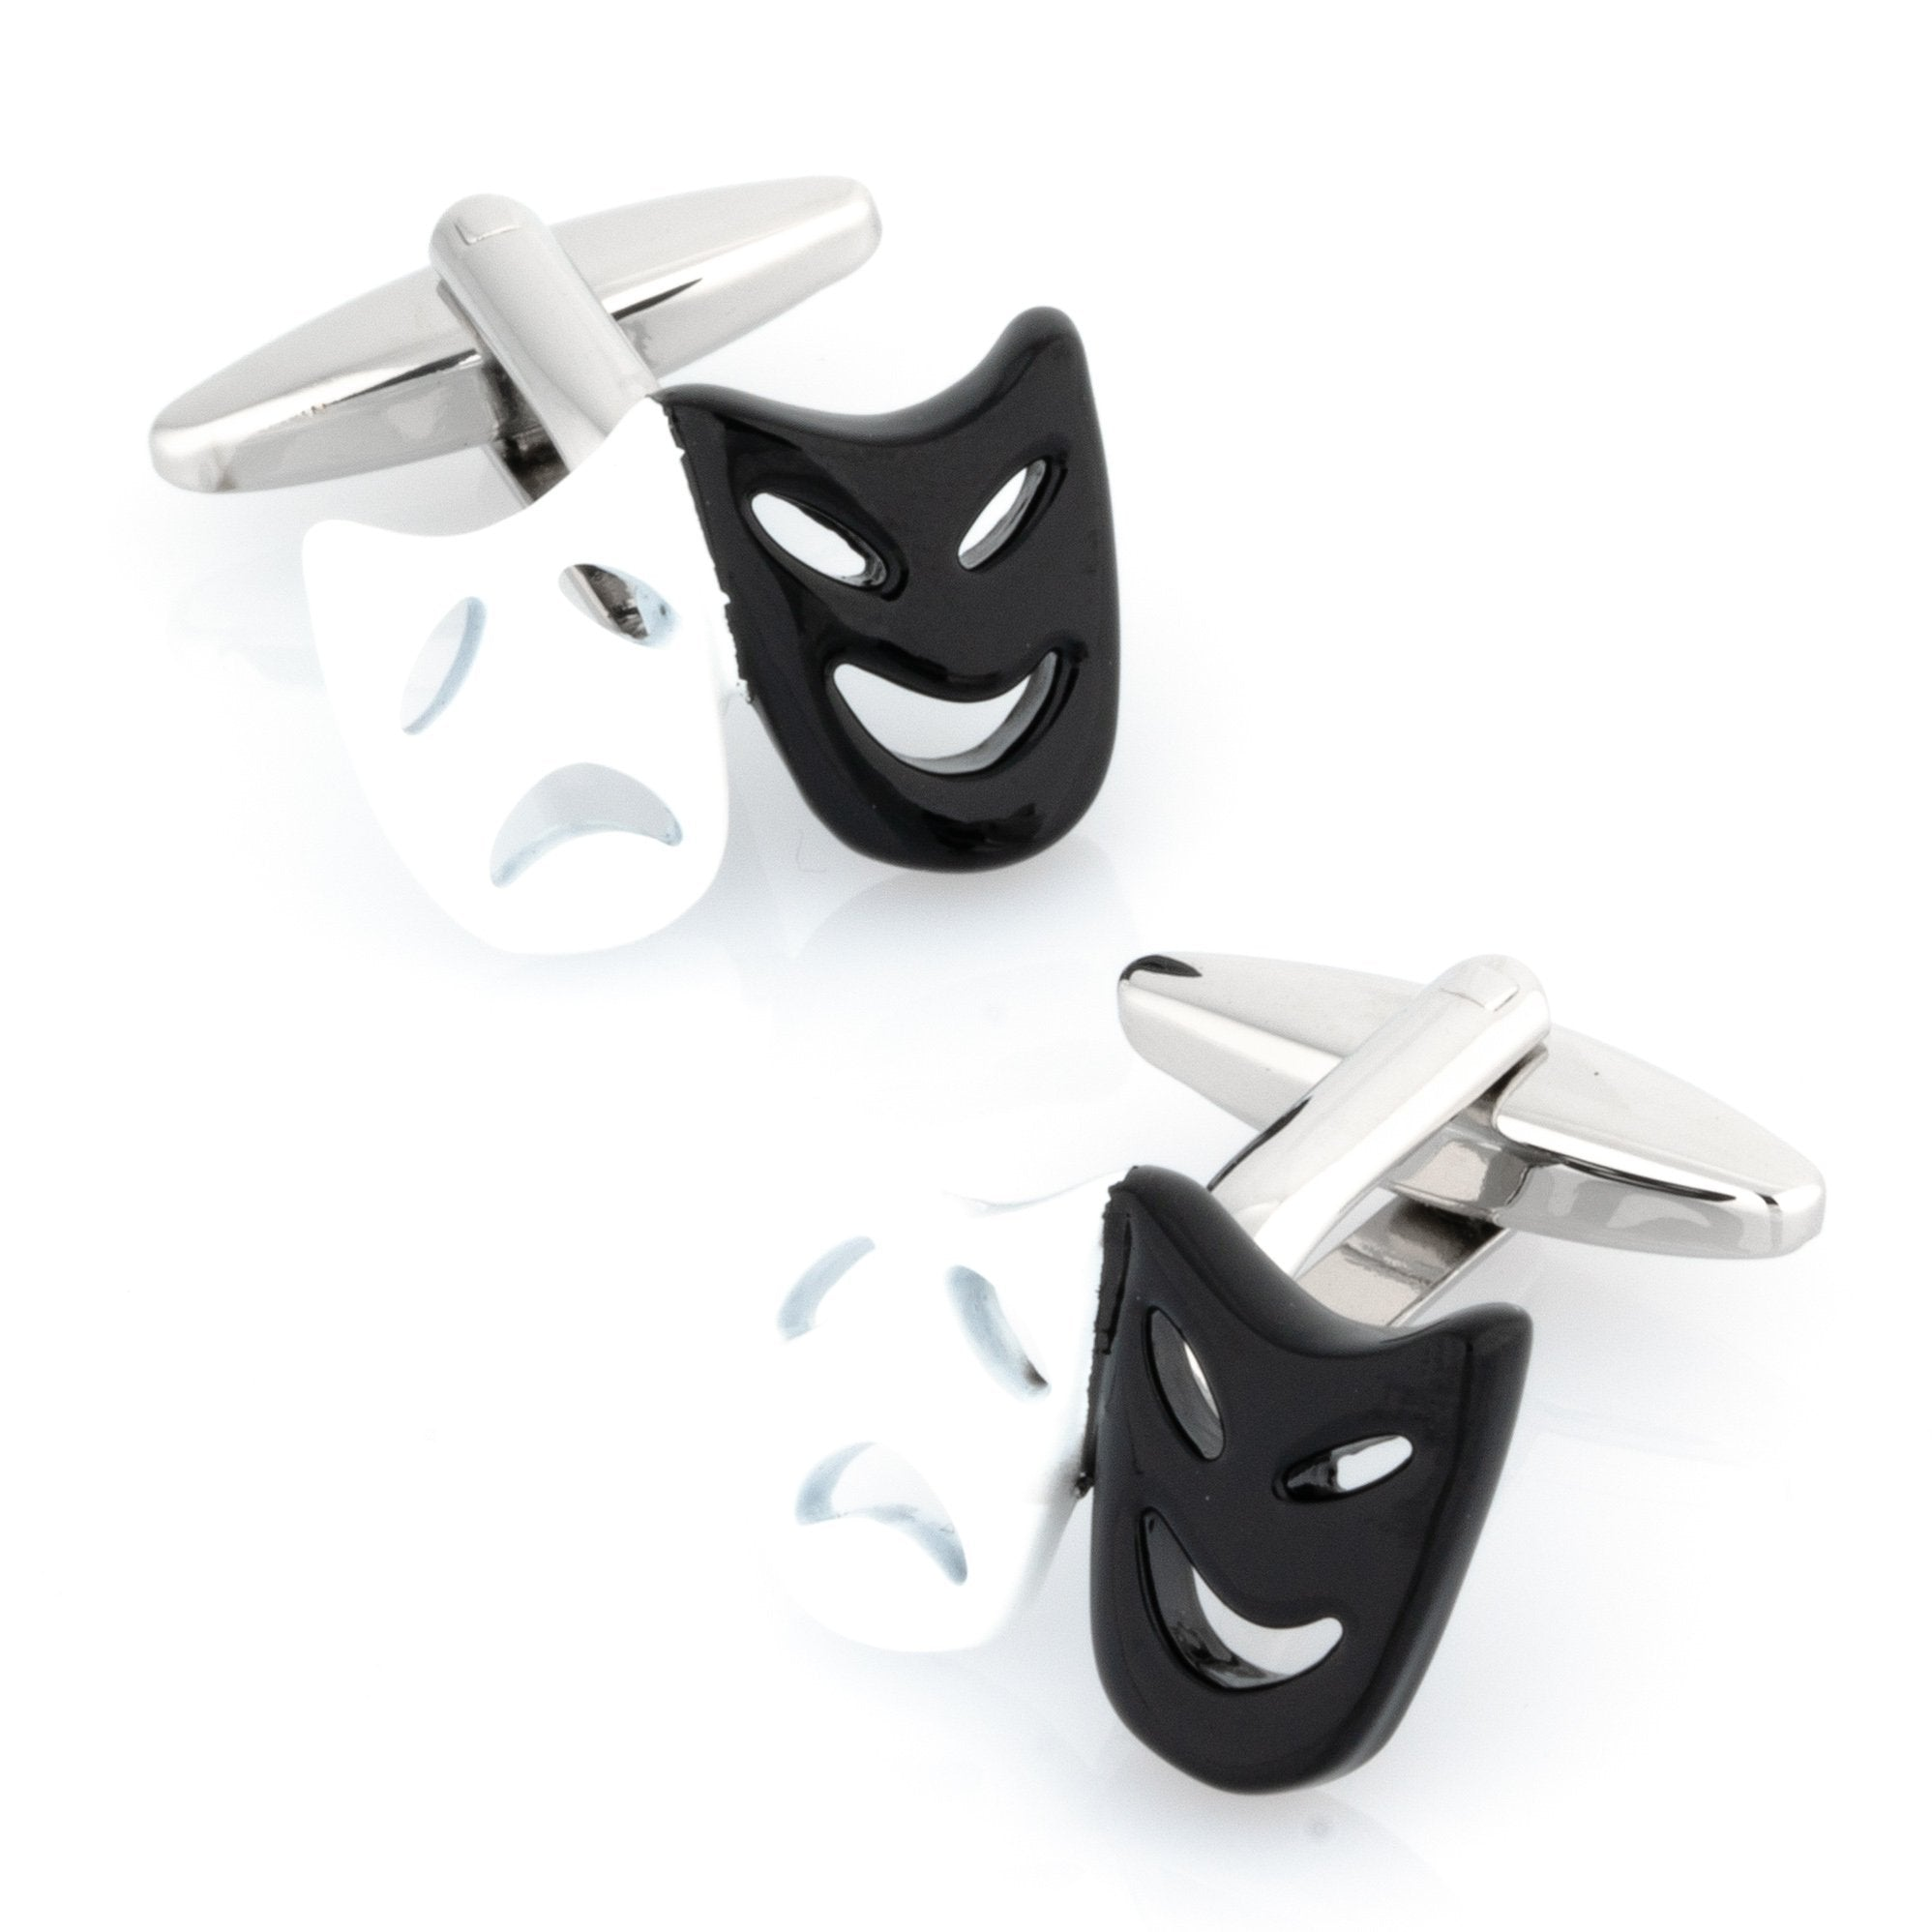 Black and White Mask Cufflinks, Novelty Cufflinks, CL8210, Mens Cufflinks, Cufflinks, Cuffed, Clinks , Clinks Australia